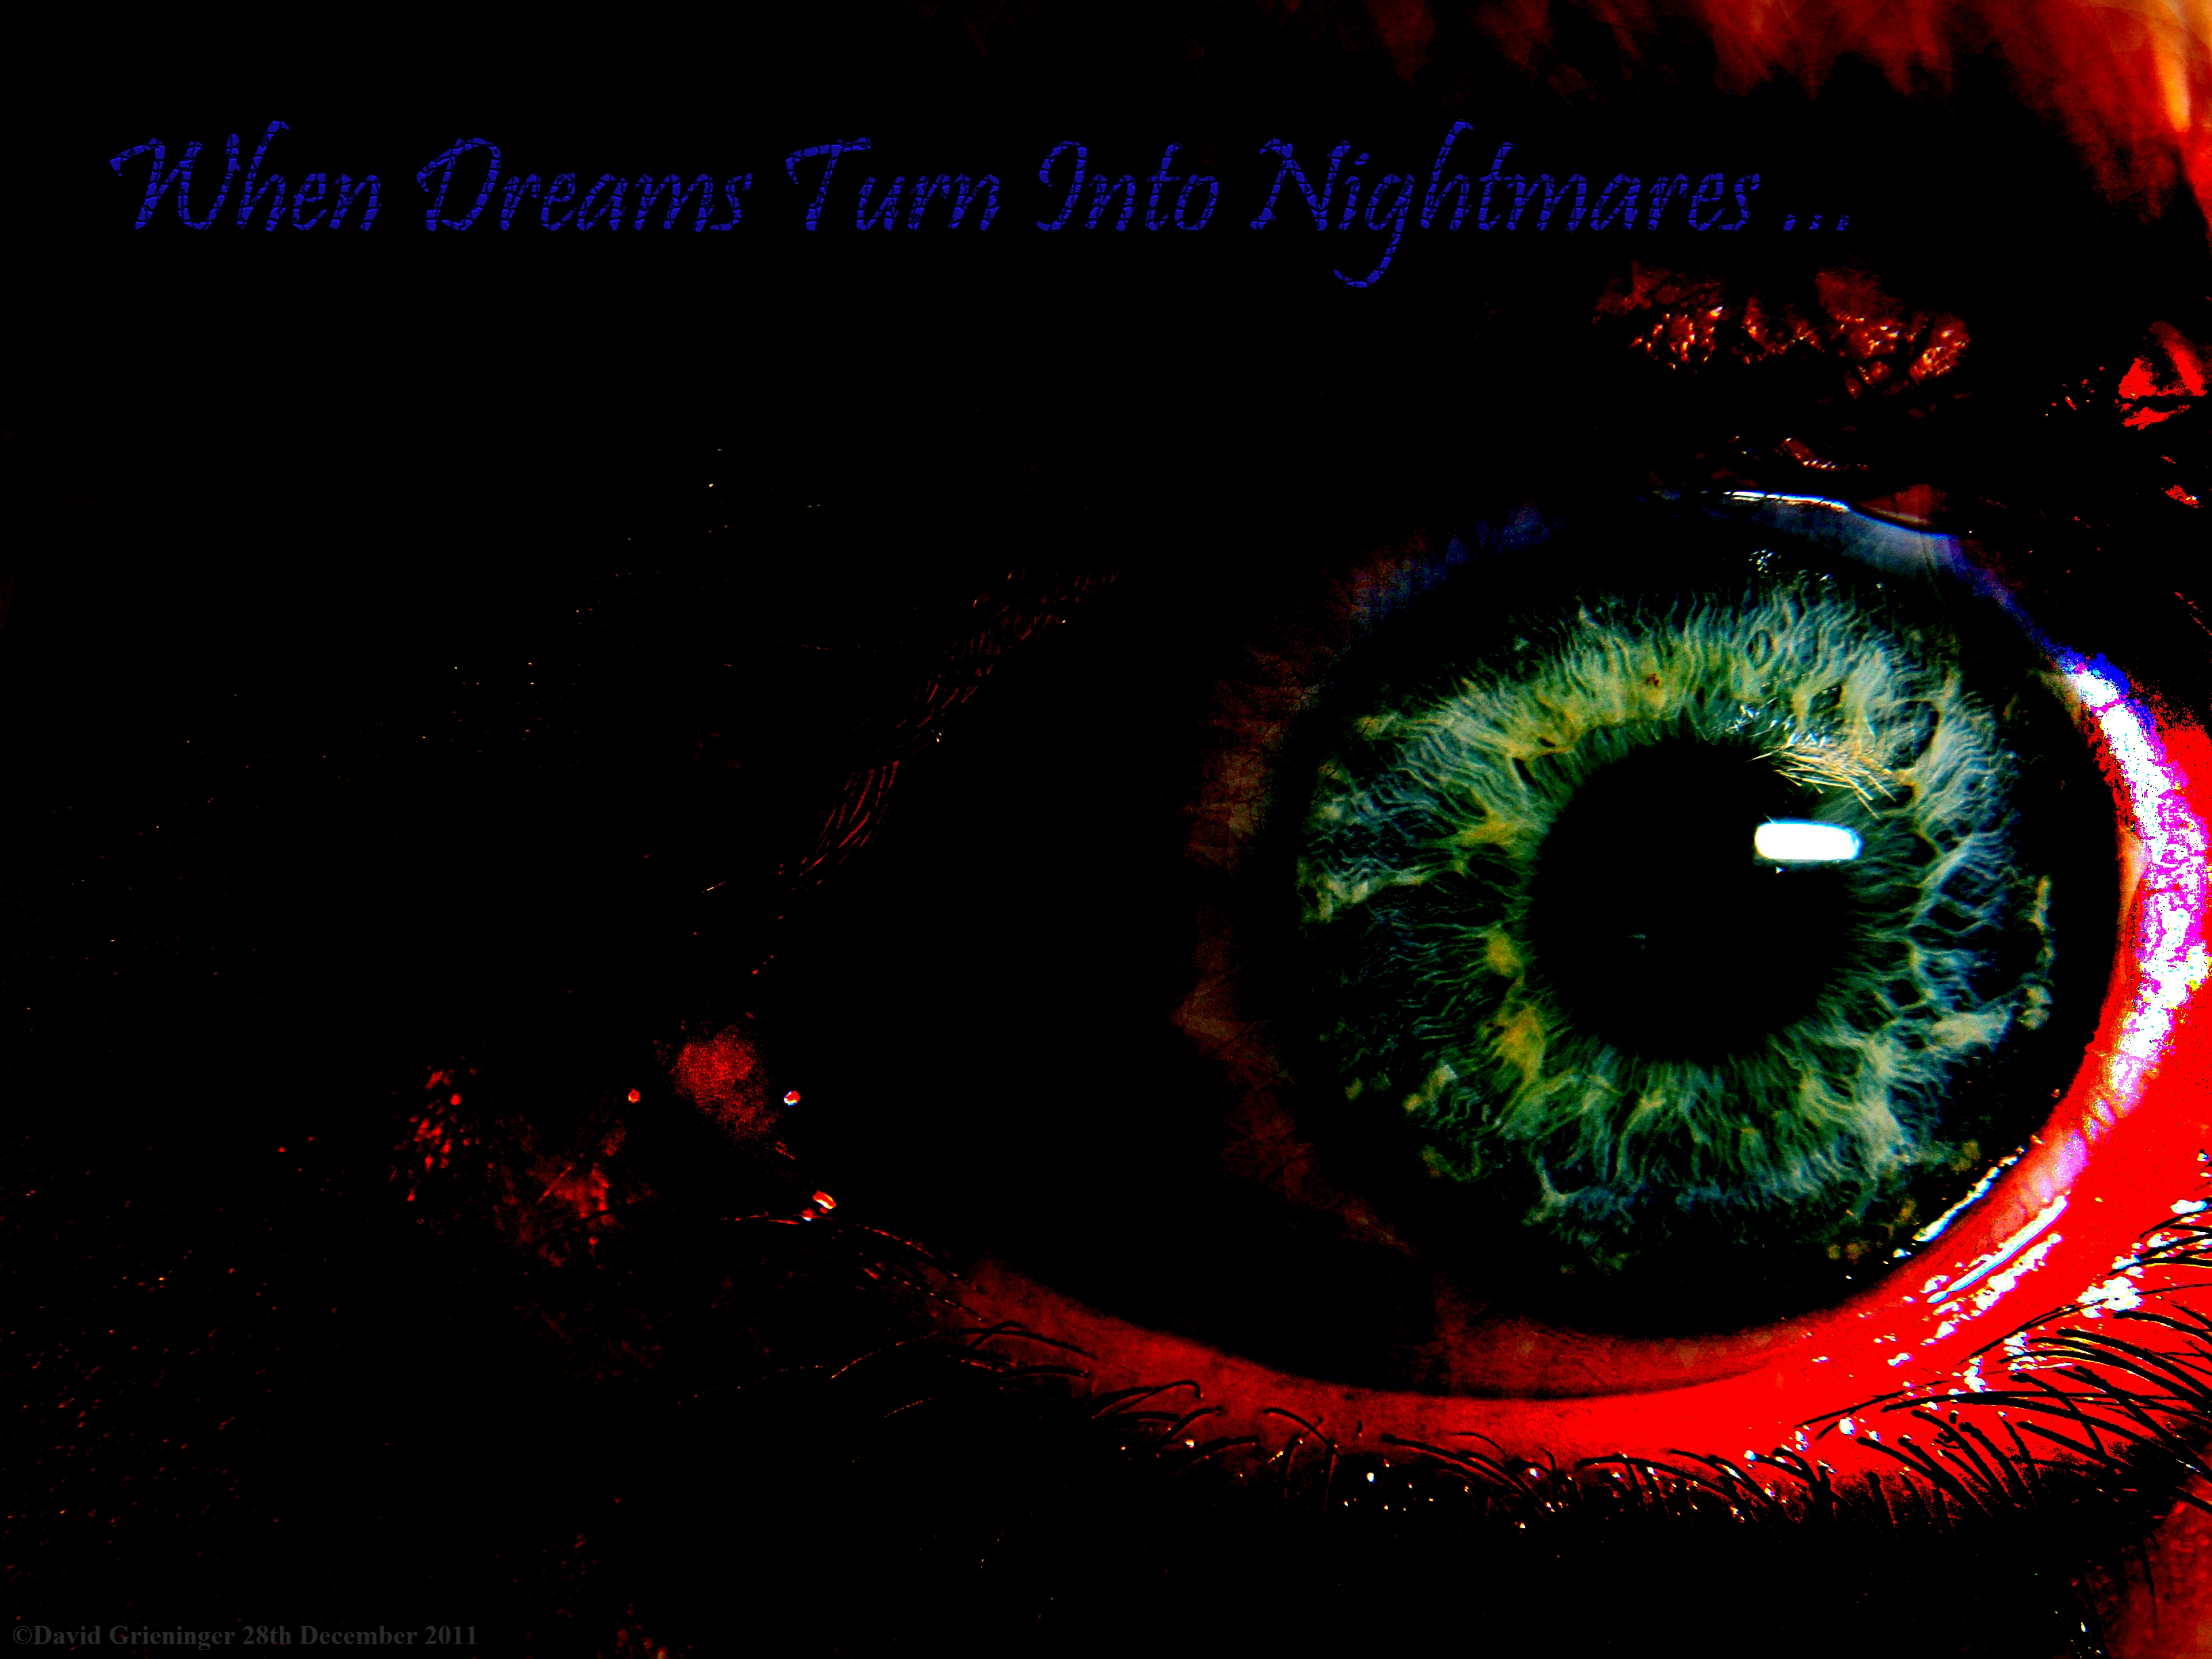 When Dreams turn into Nightmares wallpaper from Eyes wallpapers 3264x2448